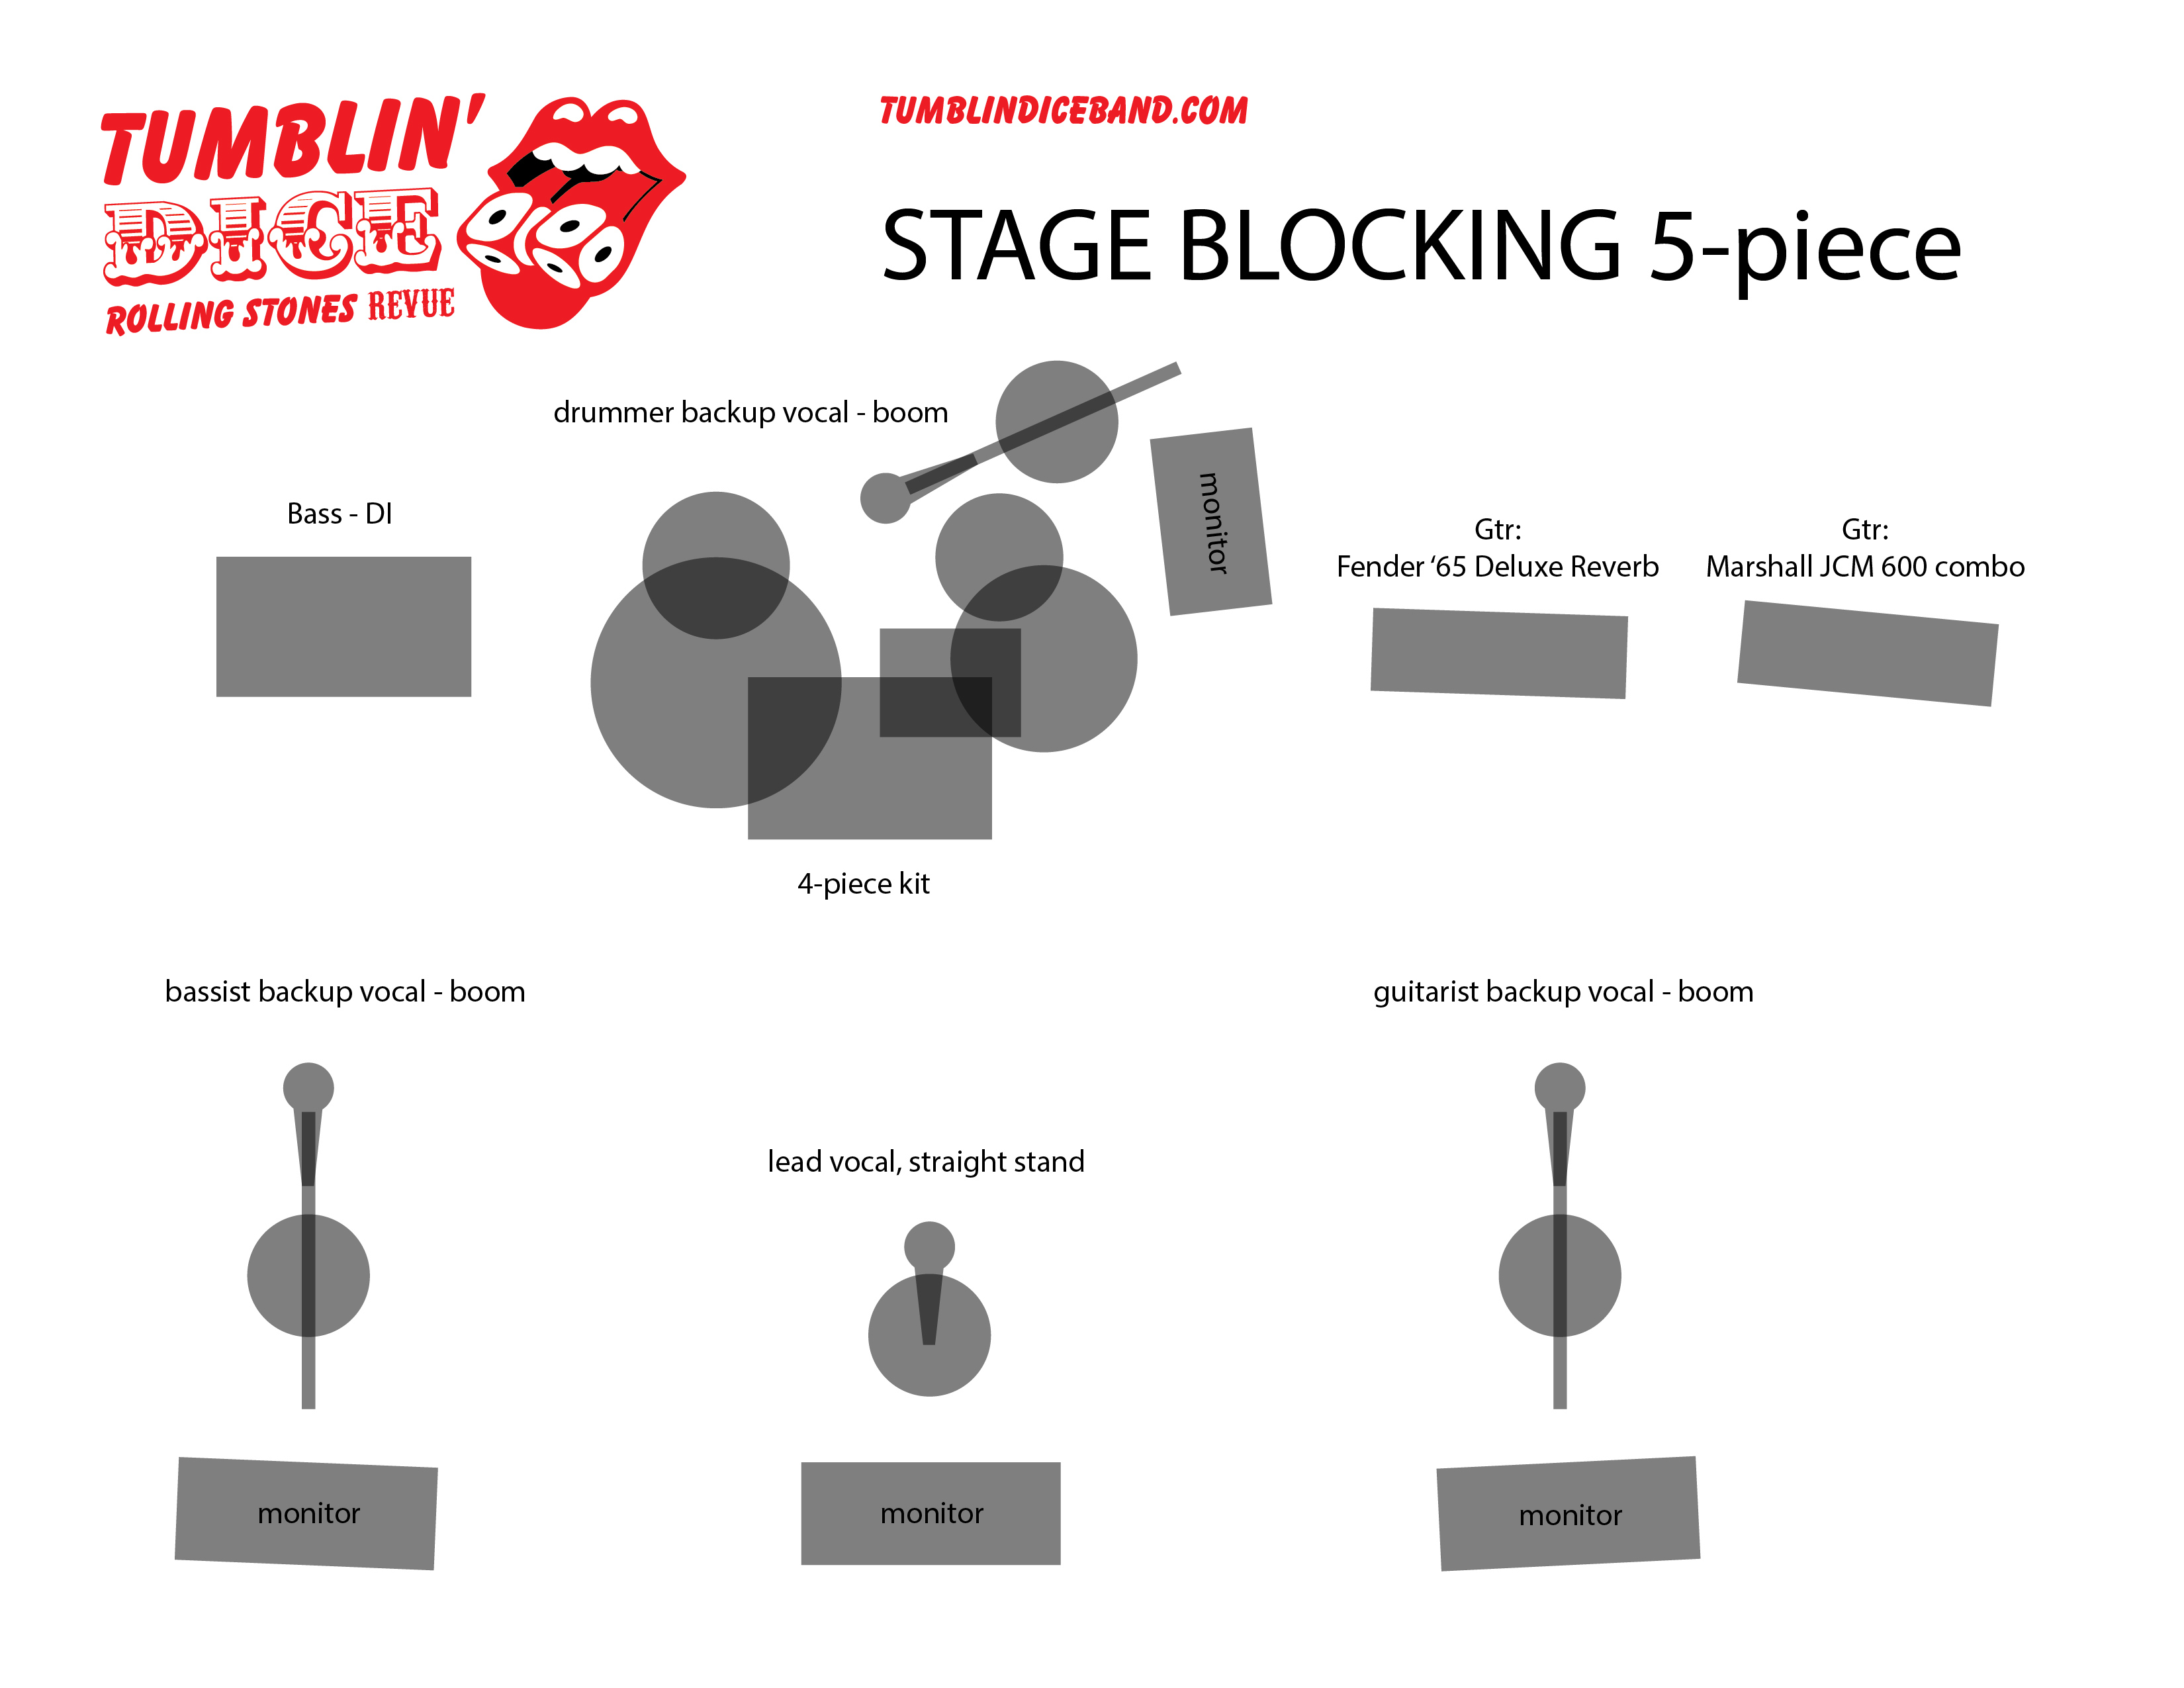 options stage blocking tumblin dice